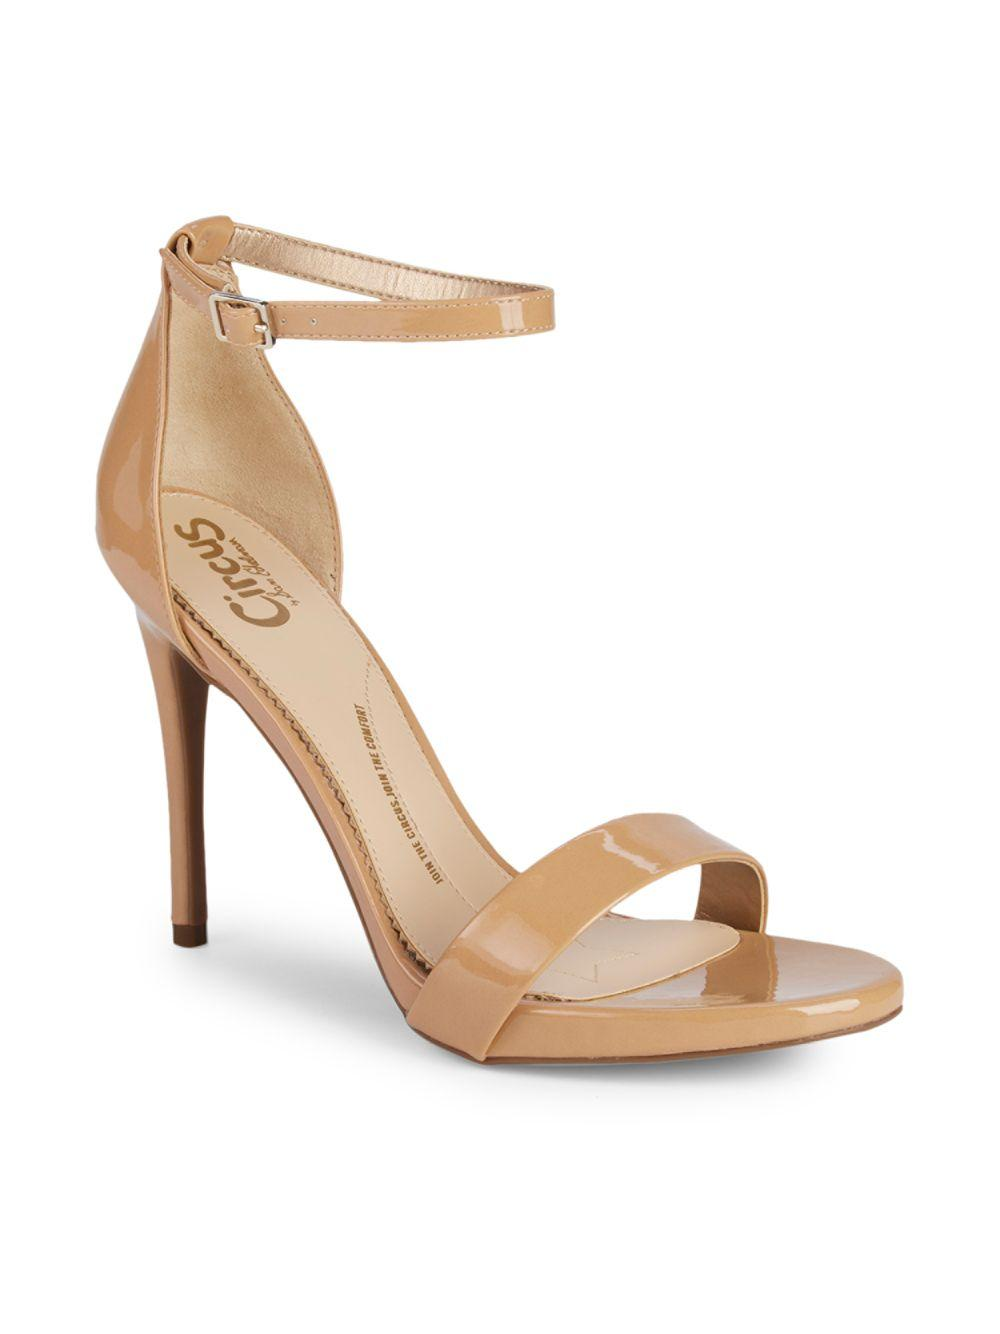 60fe1aaaa5f Circus by Sam Edelman Angela Ankle-strap Stiletto Sandals in Natural - Lyst